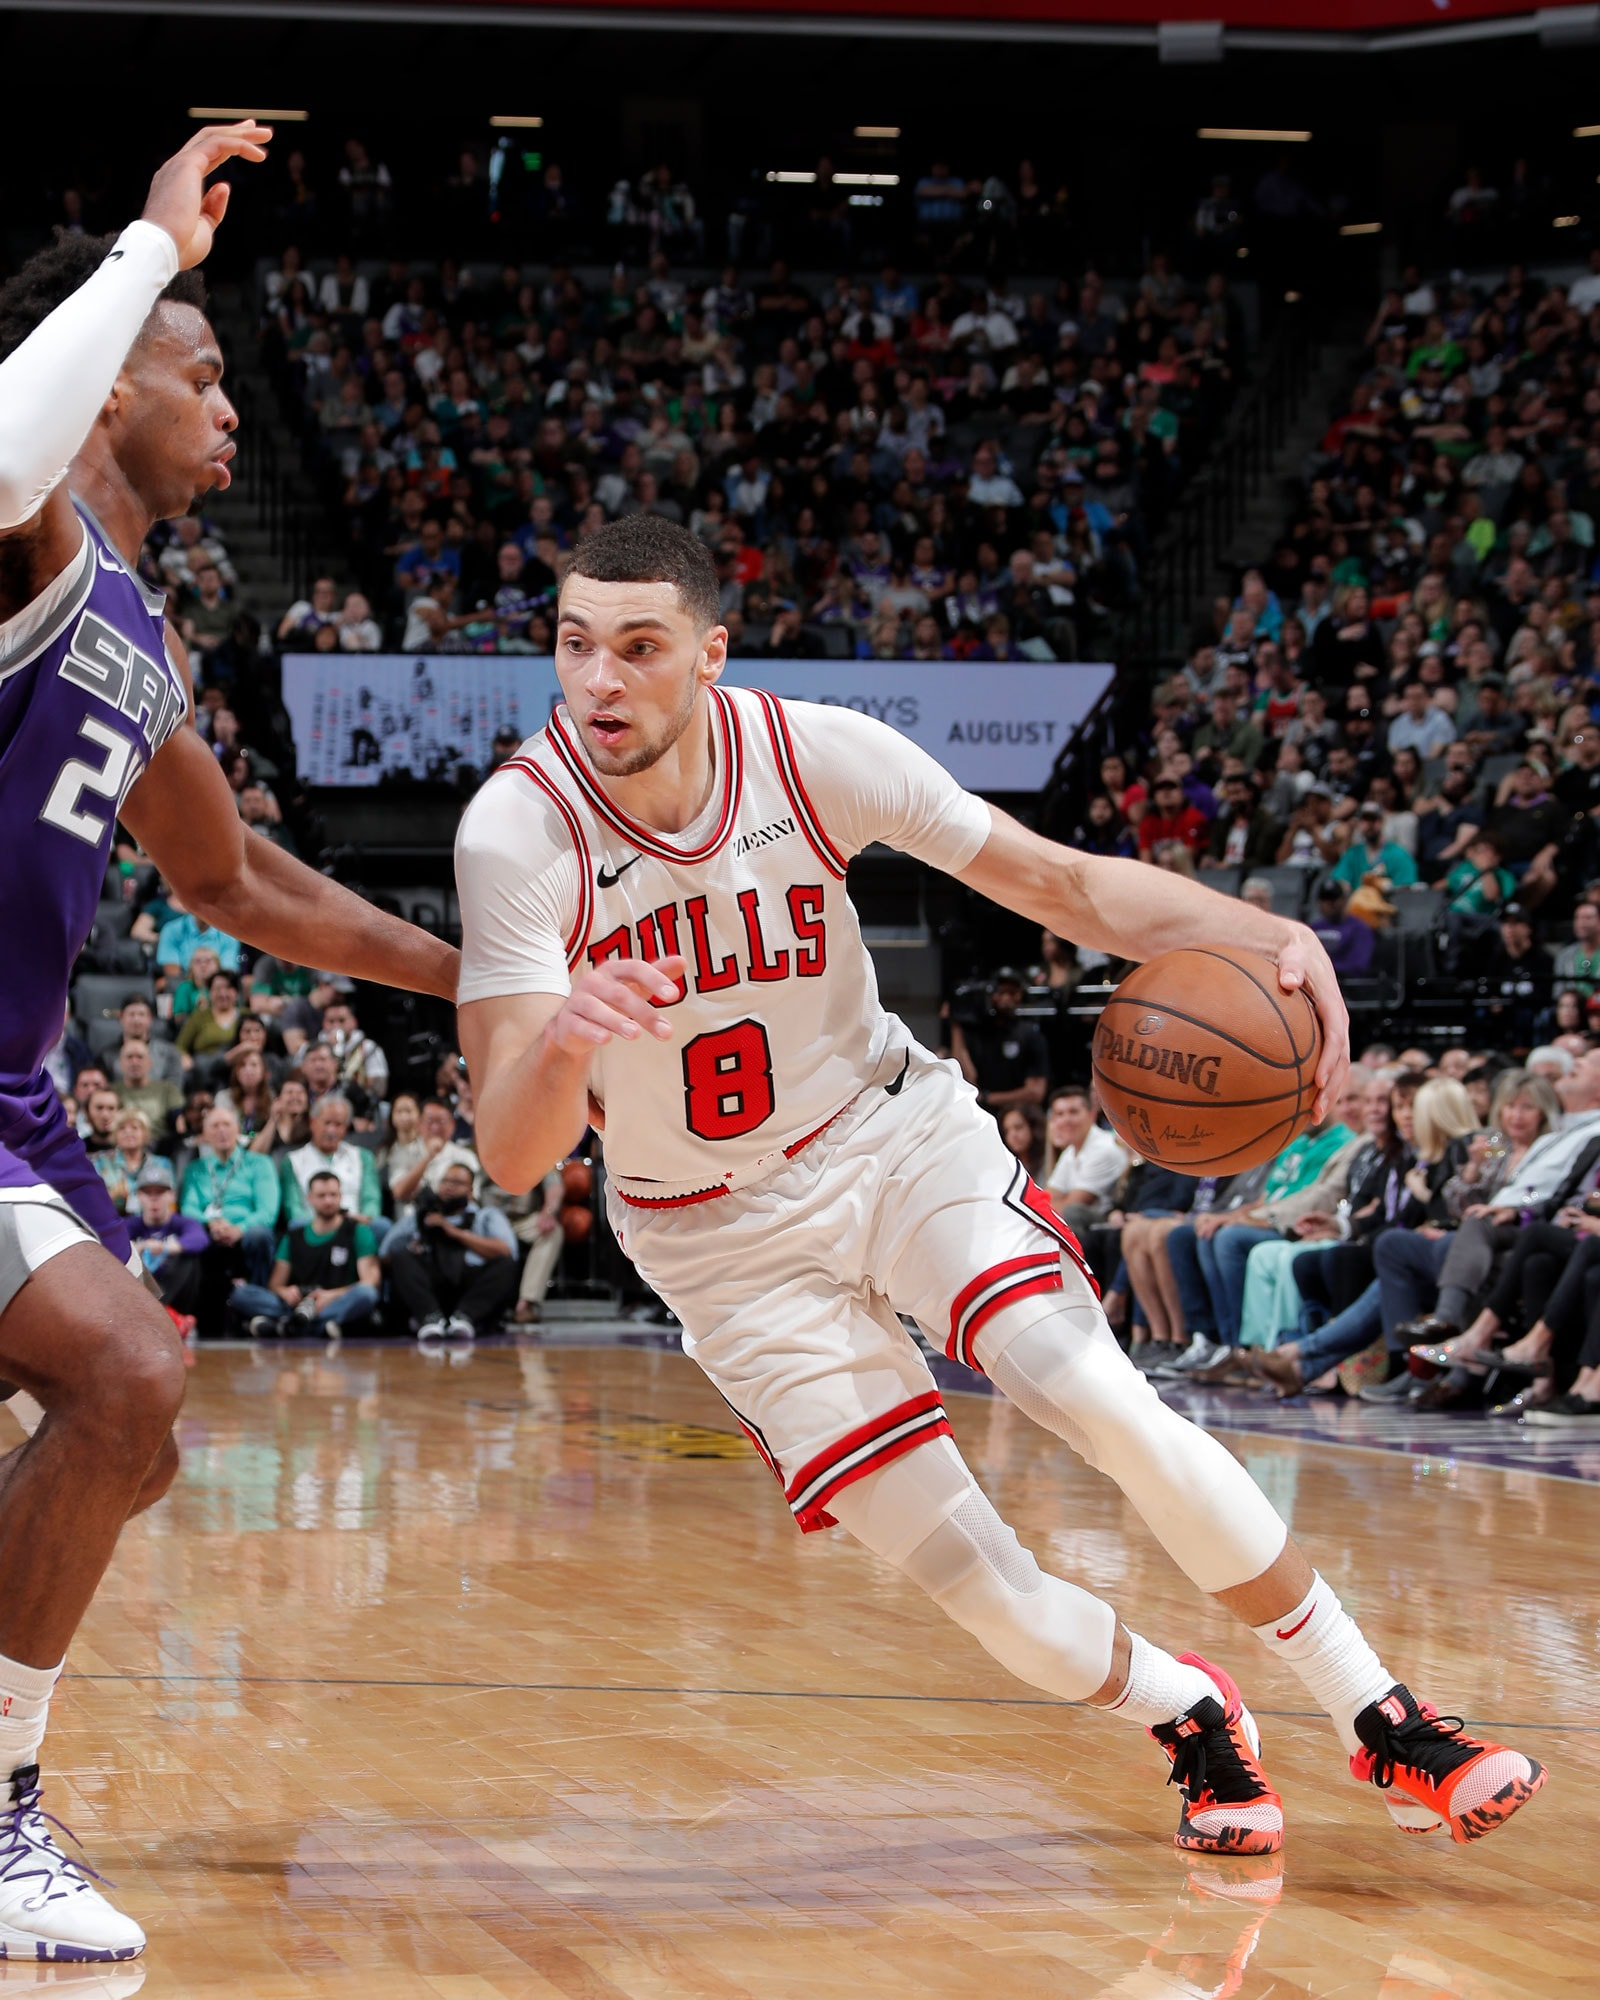 Zach LaVine #8 of the Chicago Bulls drives to the basket against the Sacramento Kings on March 17, 2019 at Golden 1 Center in Sacramento, California.